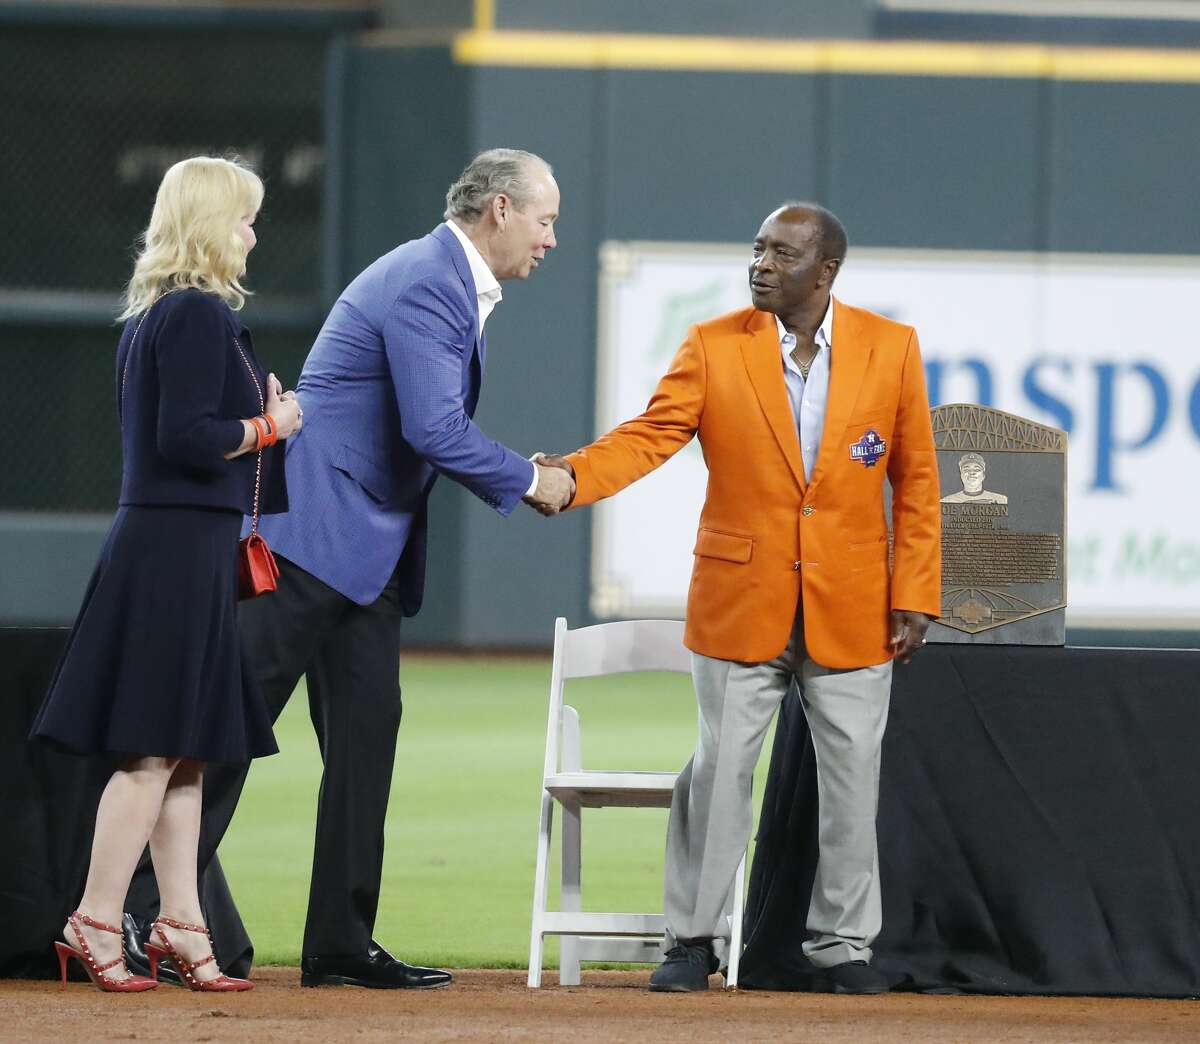 Joe Morgan during the Houston Astros inagural Hall of Fame induction ceremony before the start of an MLB game at Minute Maid Park, Sunday, August 3, 2019.